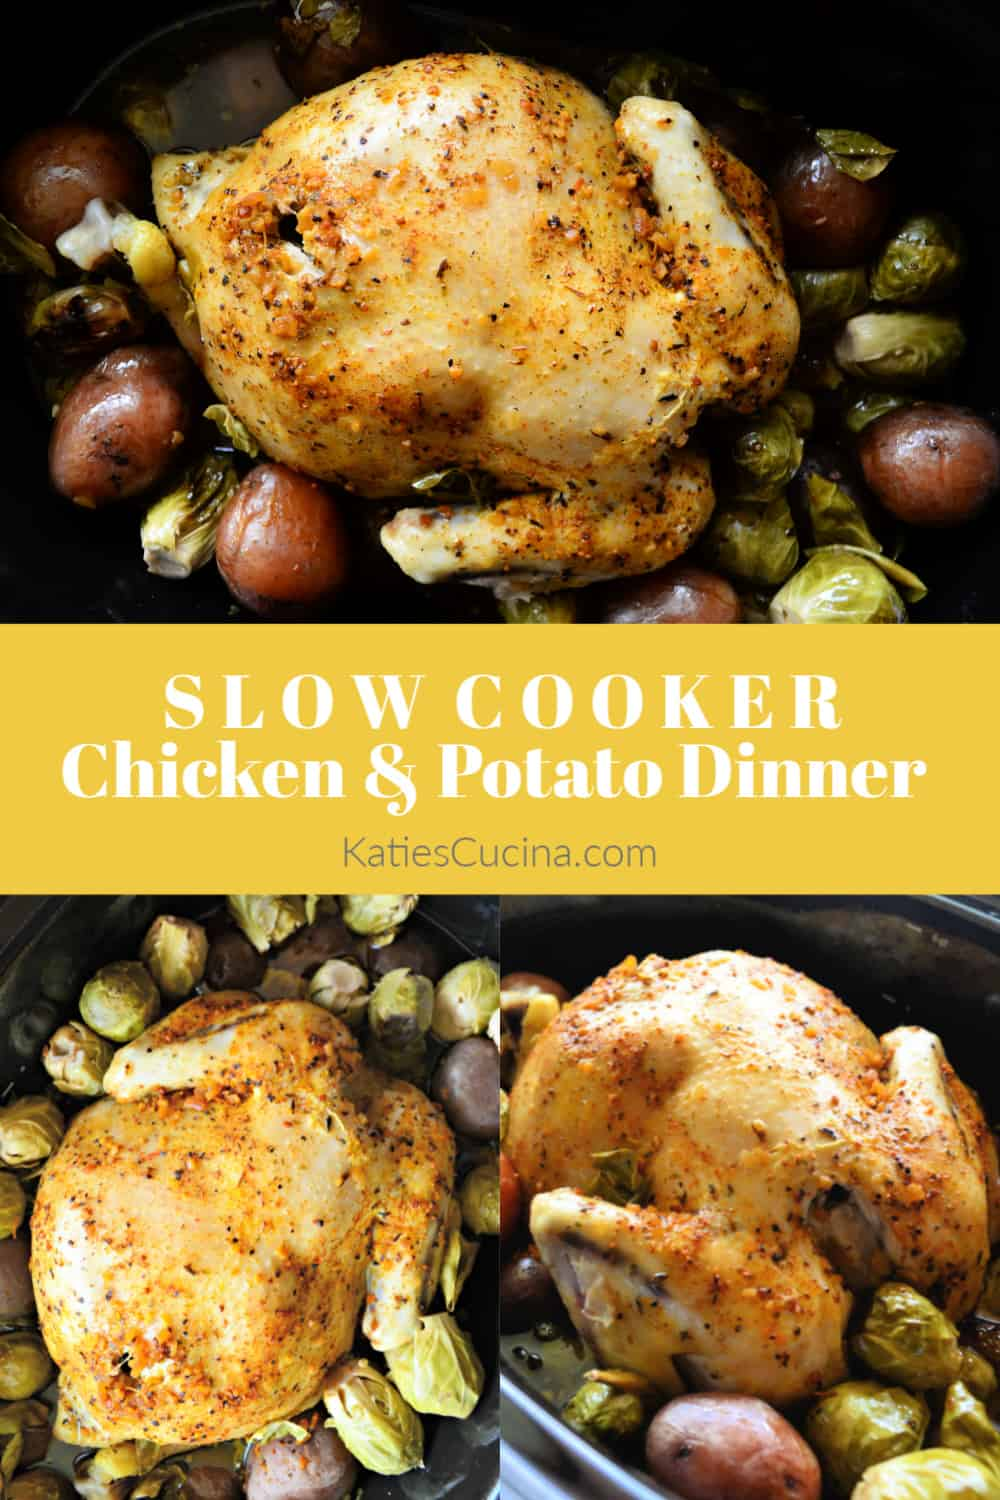 Slow Cooker Chicken And Potato Dinner with Text